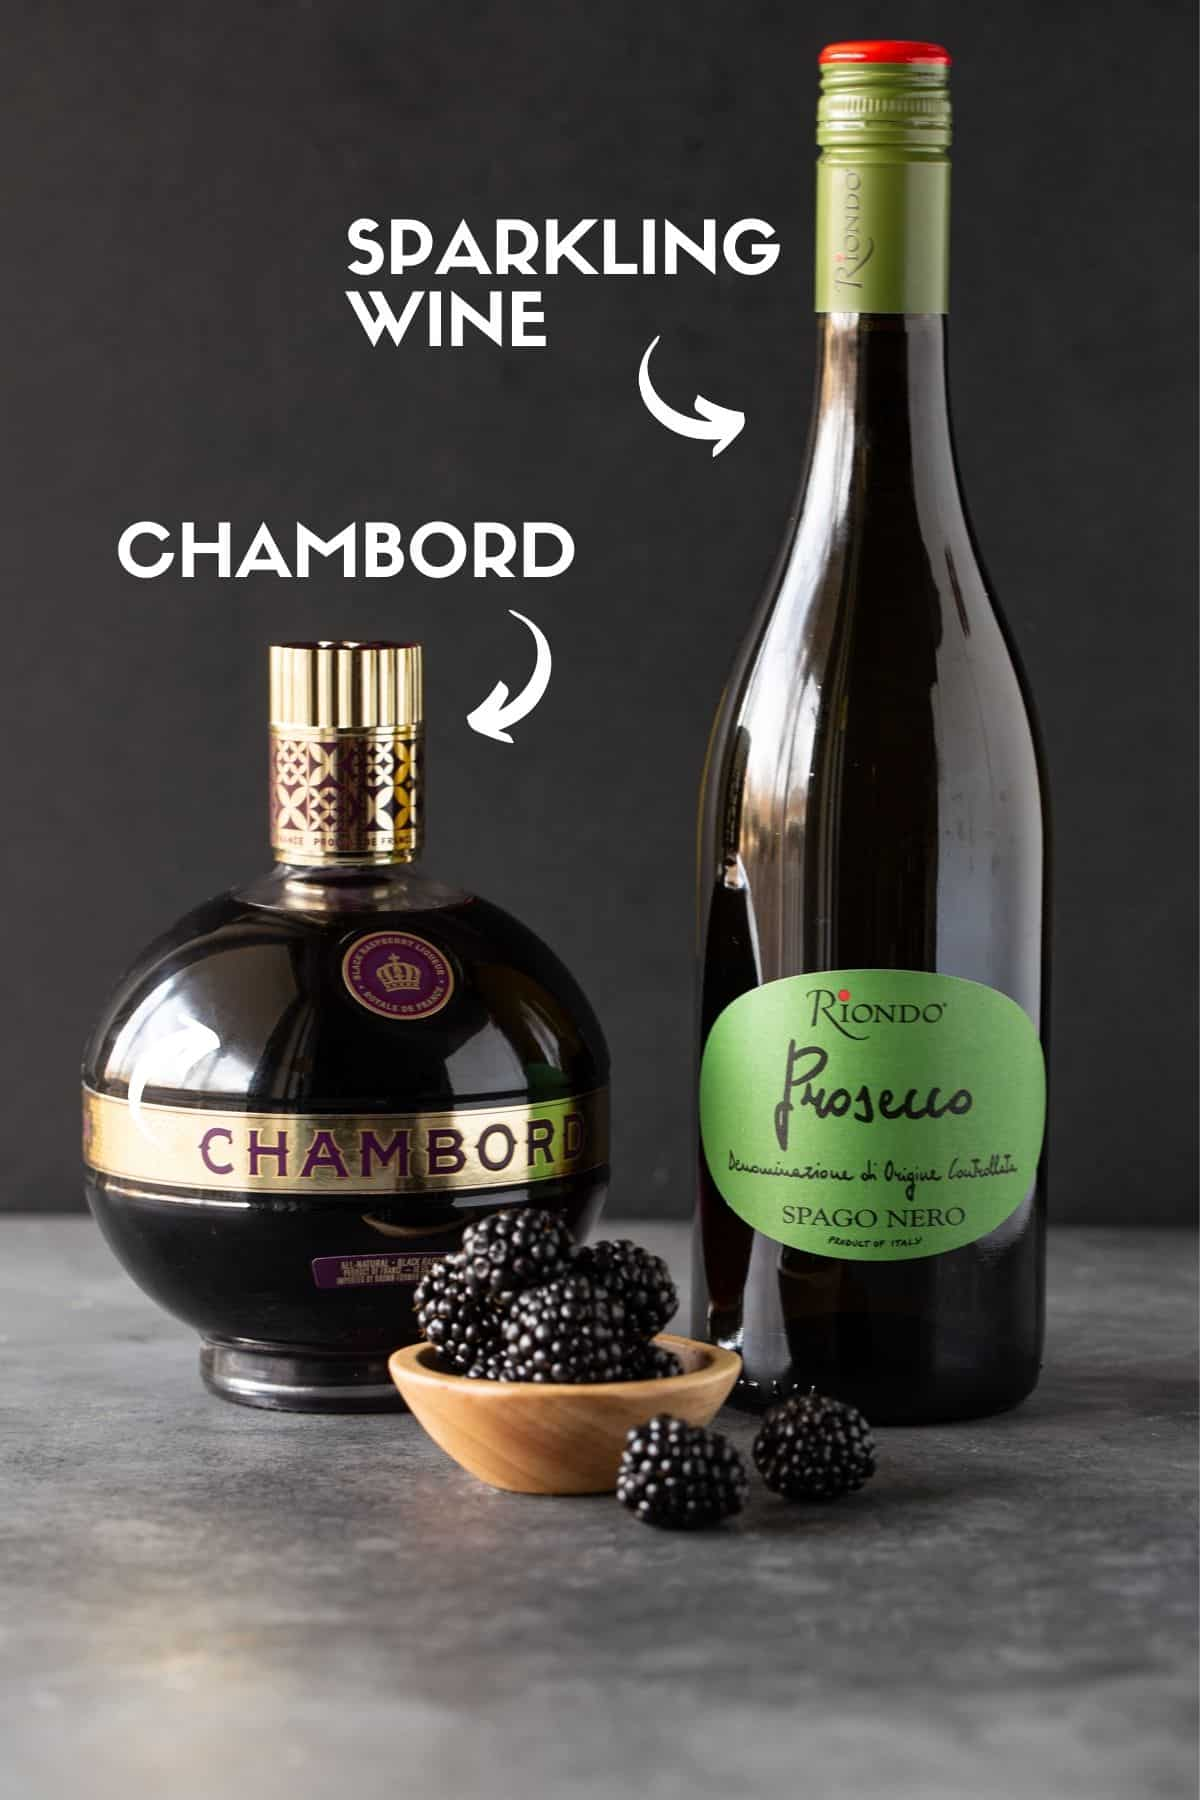 Bottle of Chambord and bottle of sparkling wine.